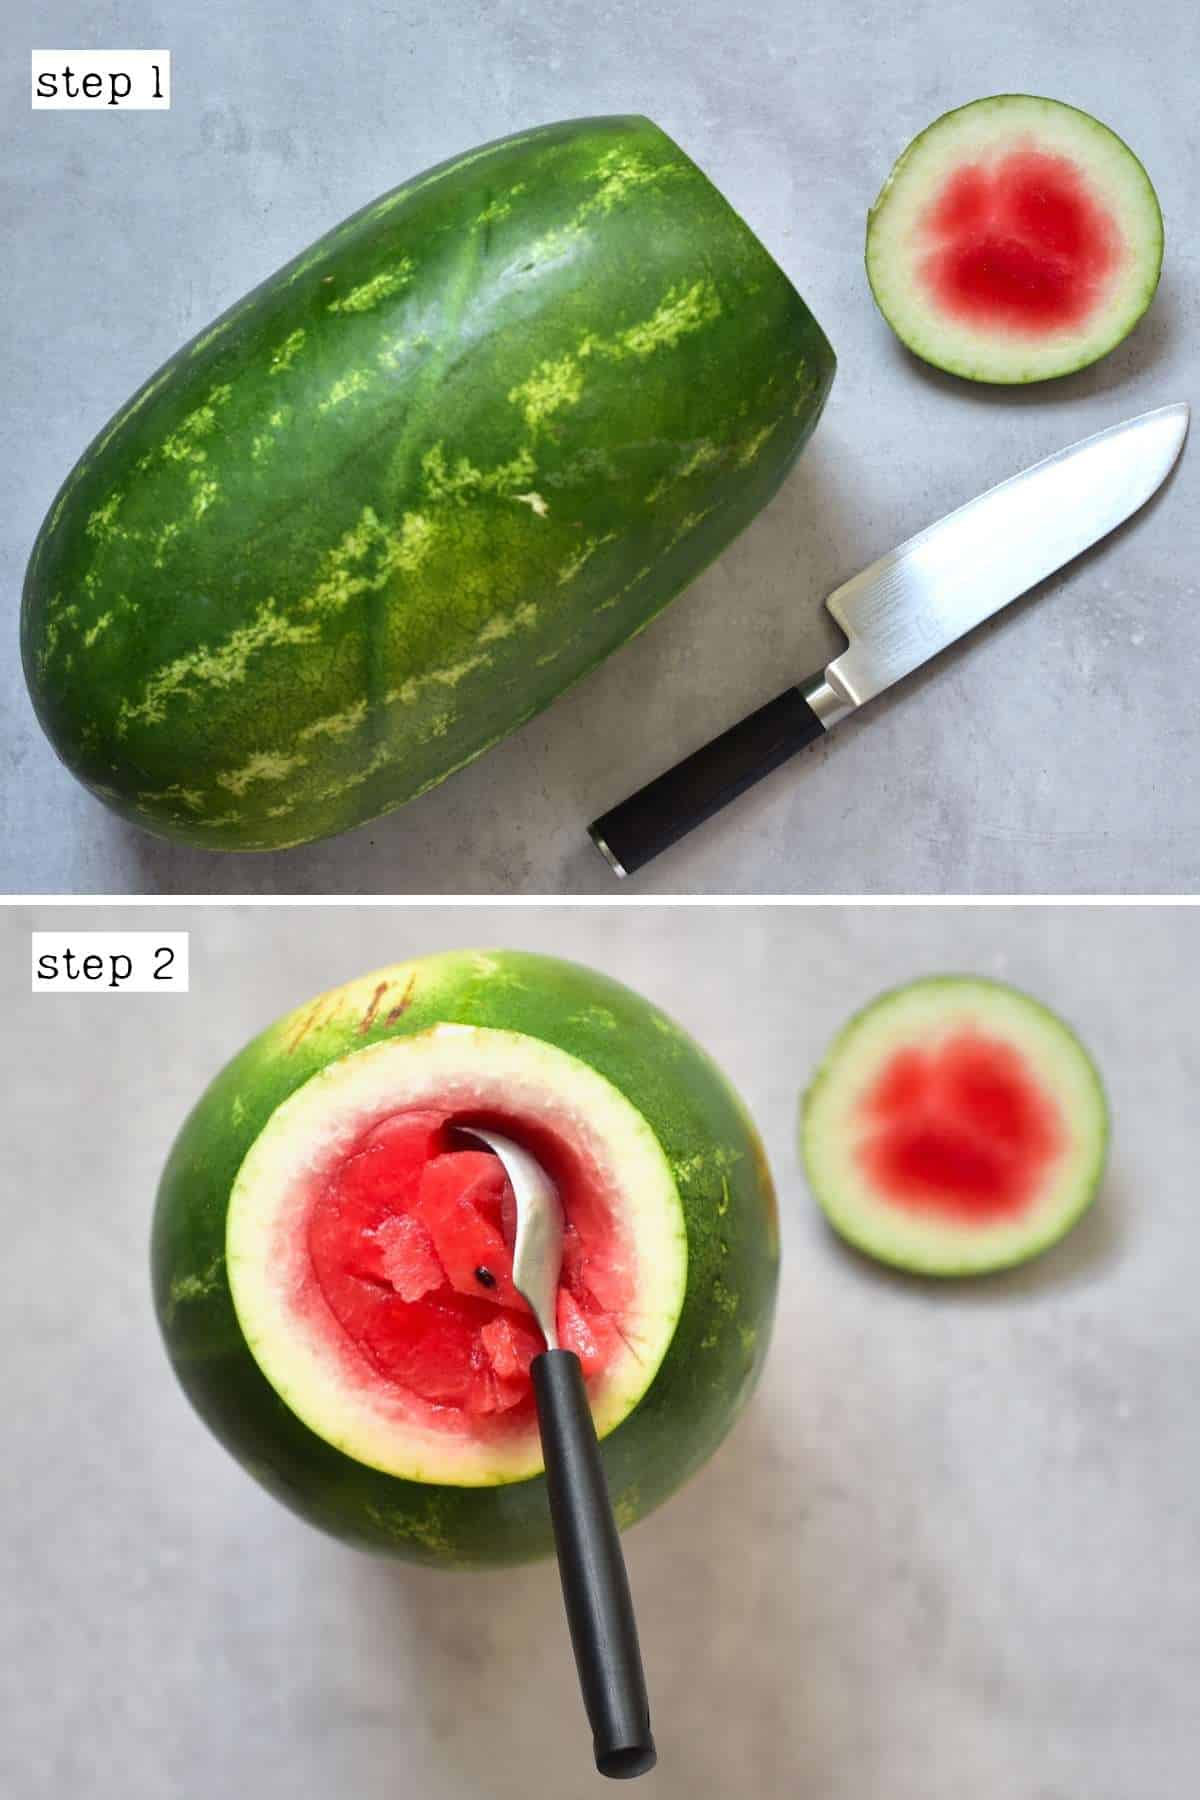 Steps for cutting a watermelon